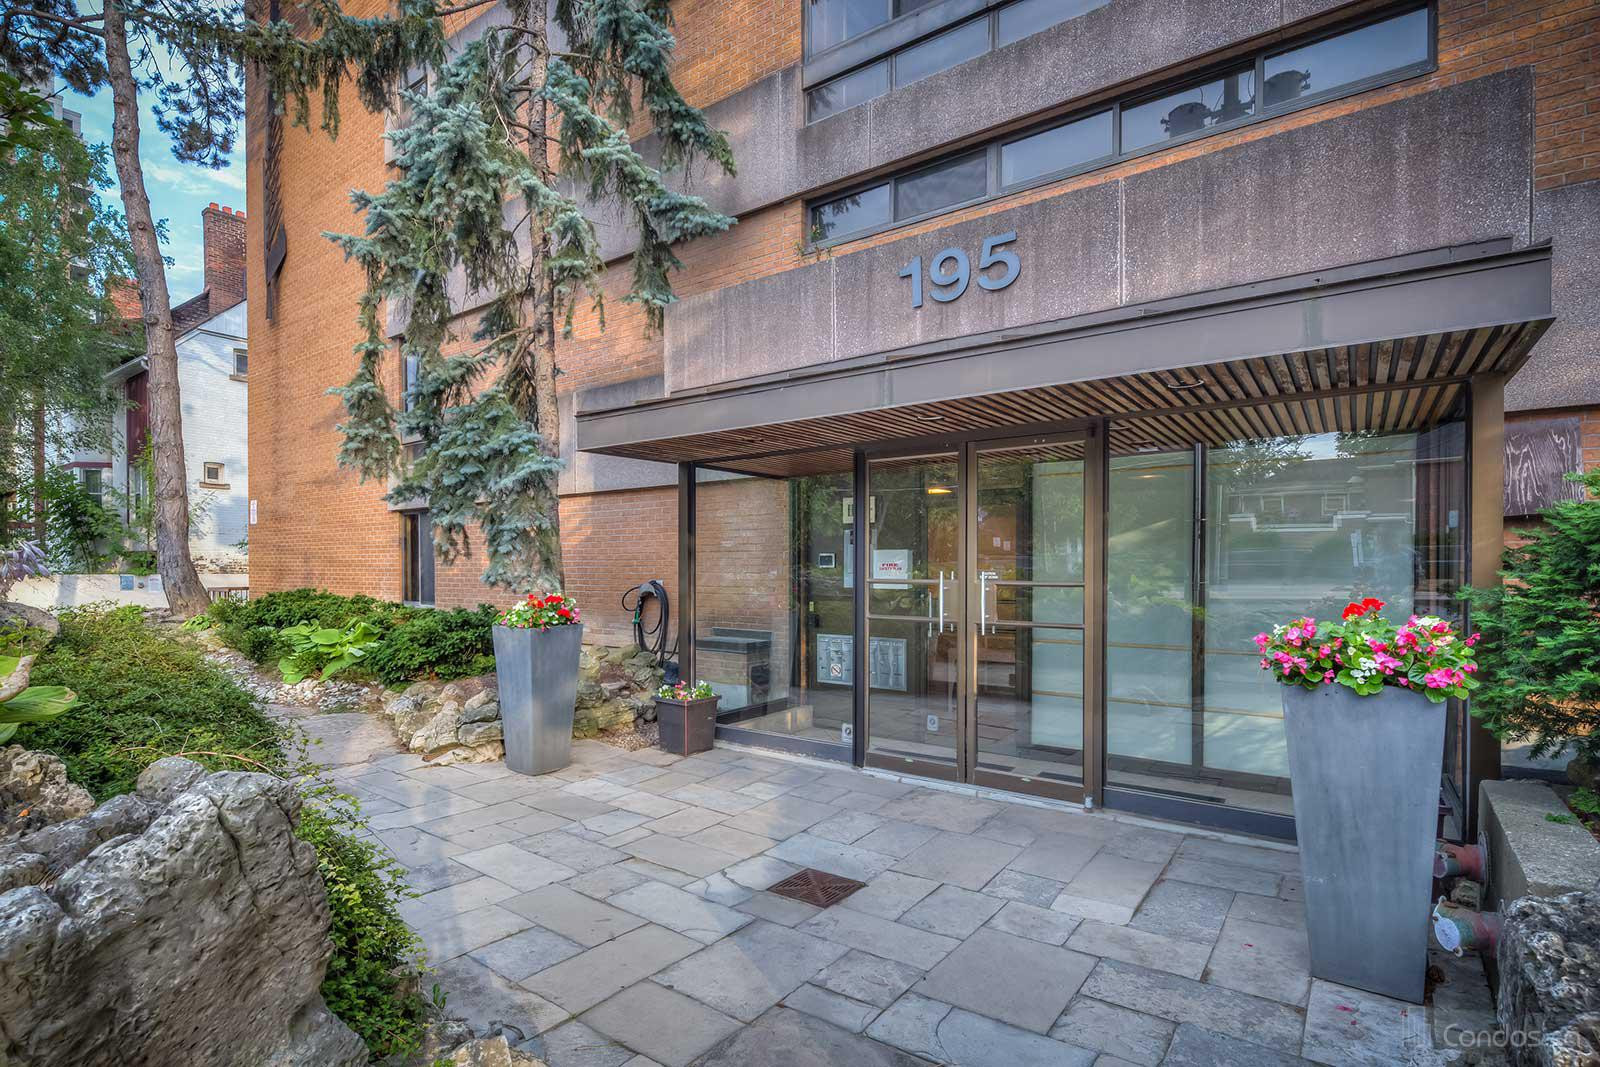 195 St Clair Avenue West Condos at 195 St Clair Ave W, Toronto 1